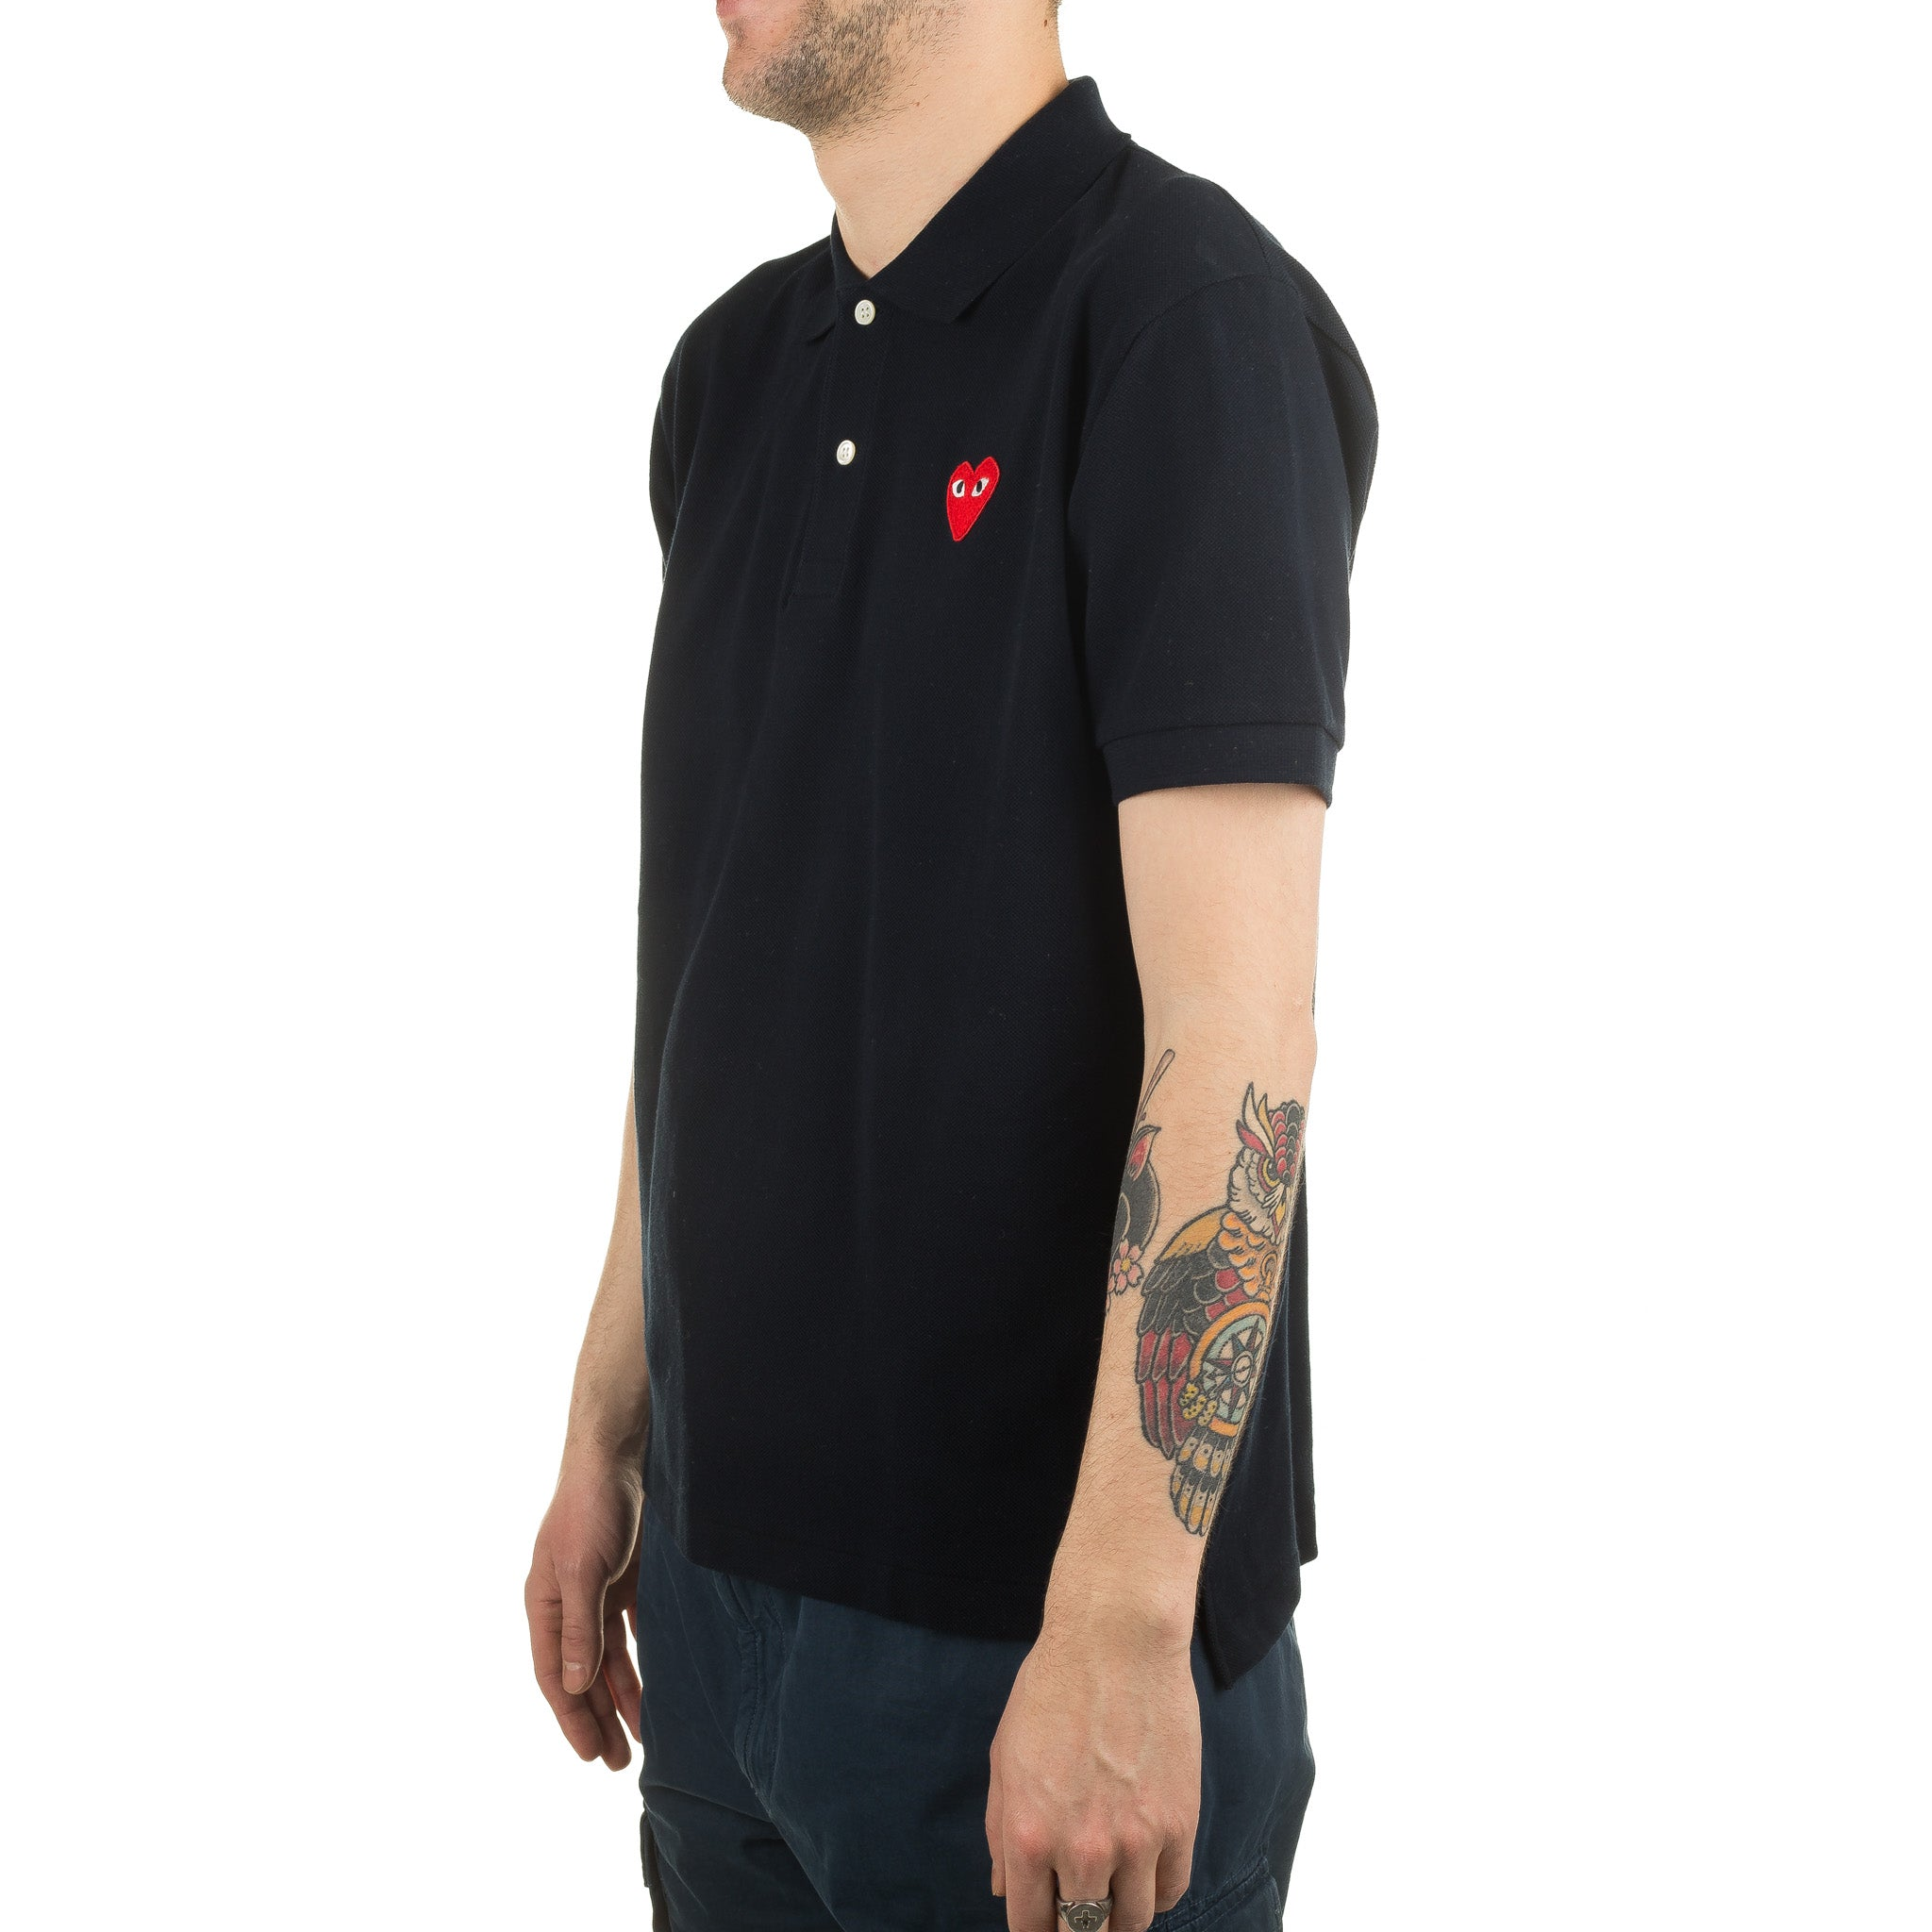 AZ-T006-051-2 Polo Shirt Navy